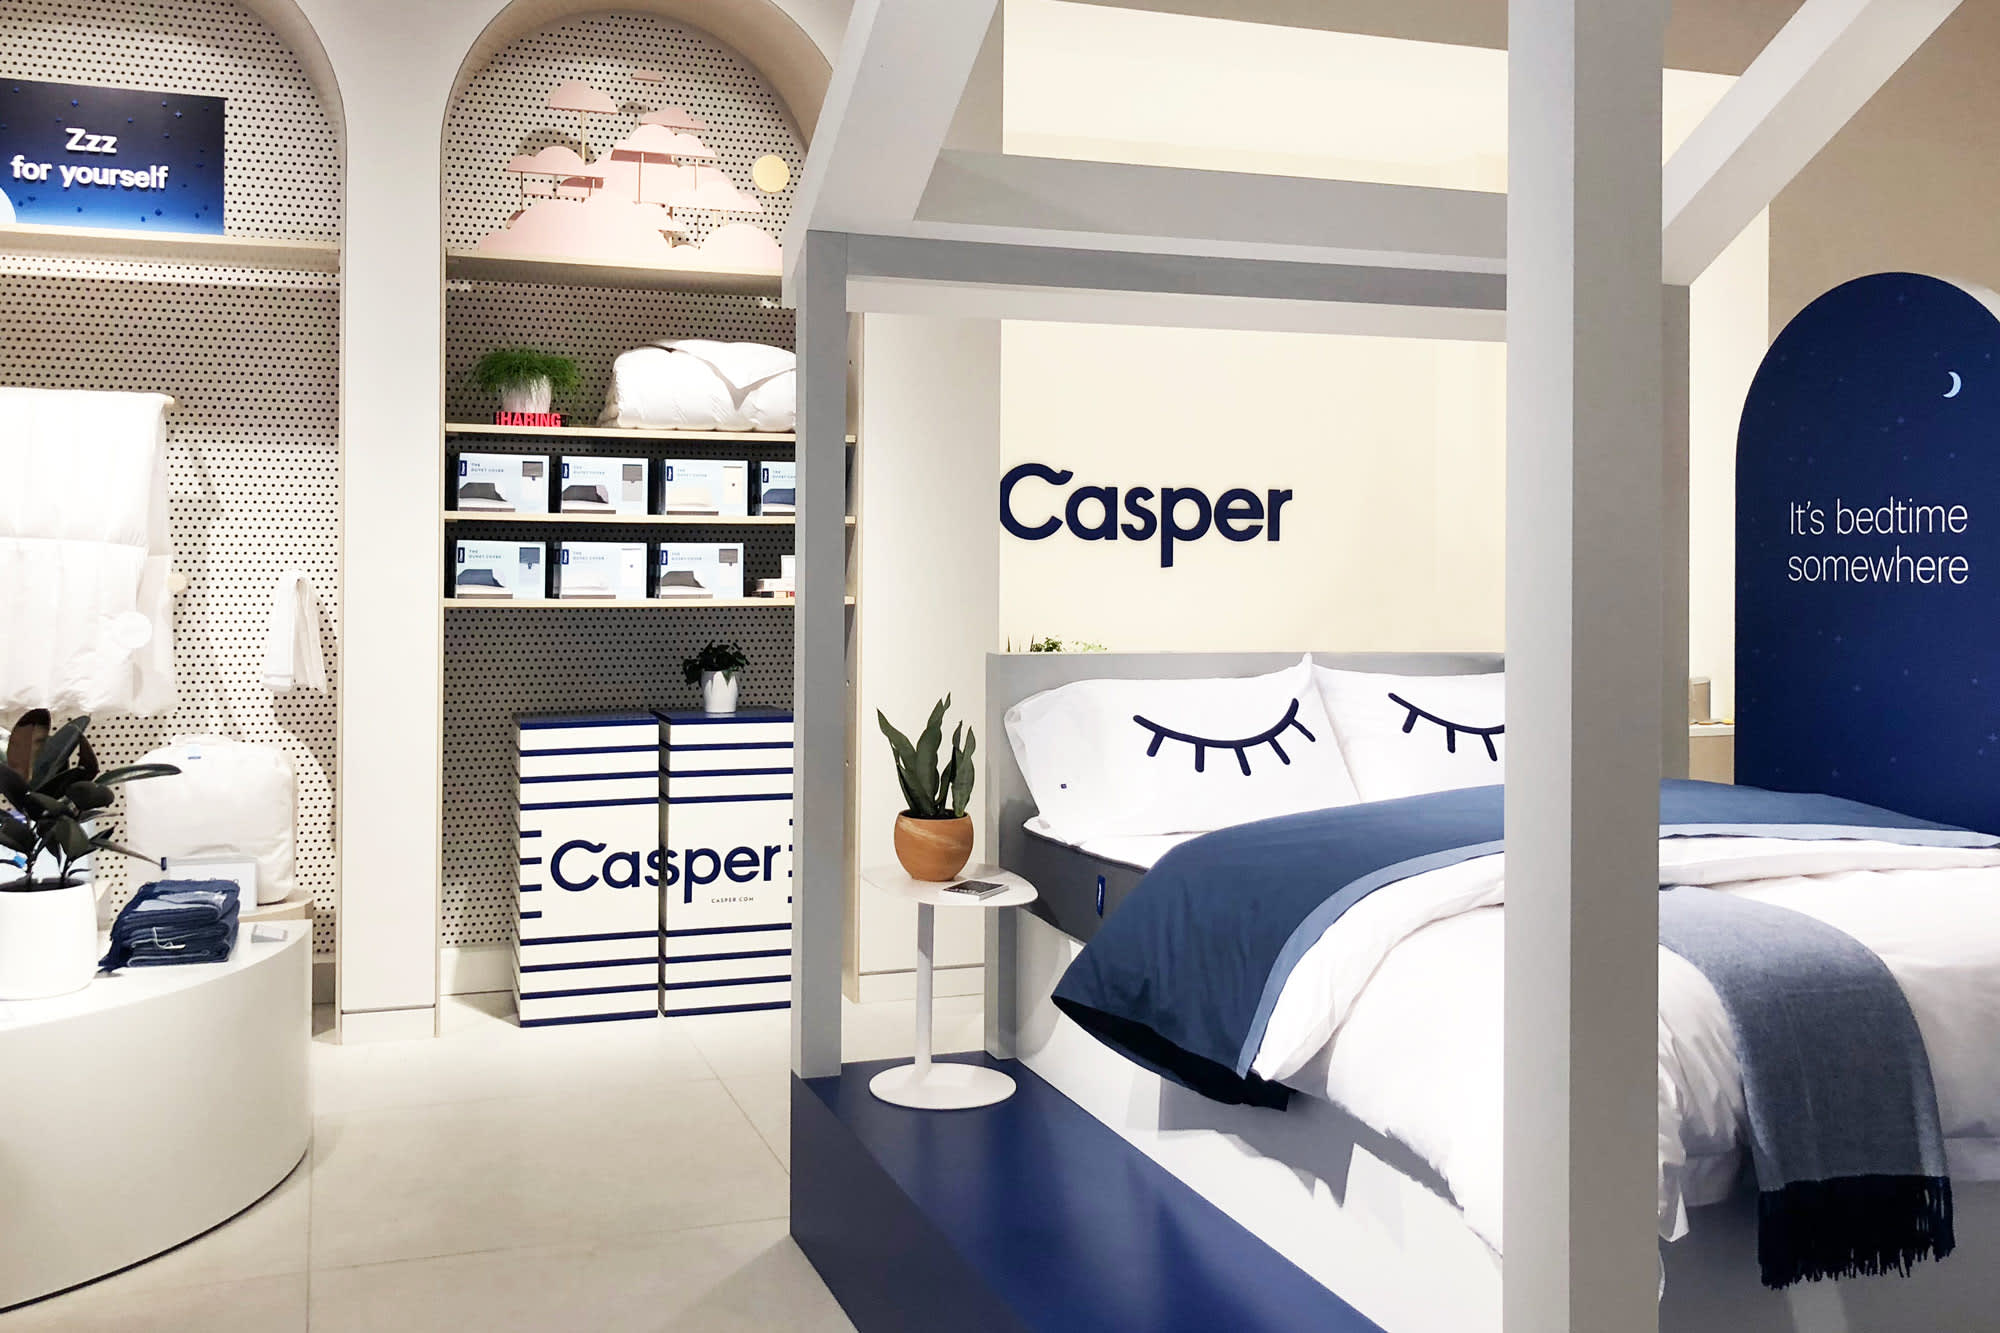 Cramer worries about Casper's staggering losses in the 'post-WeWork apocalypse' IPO climate